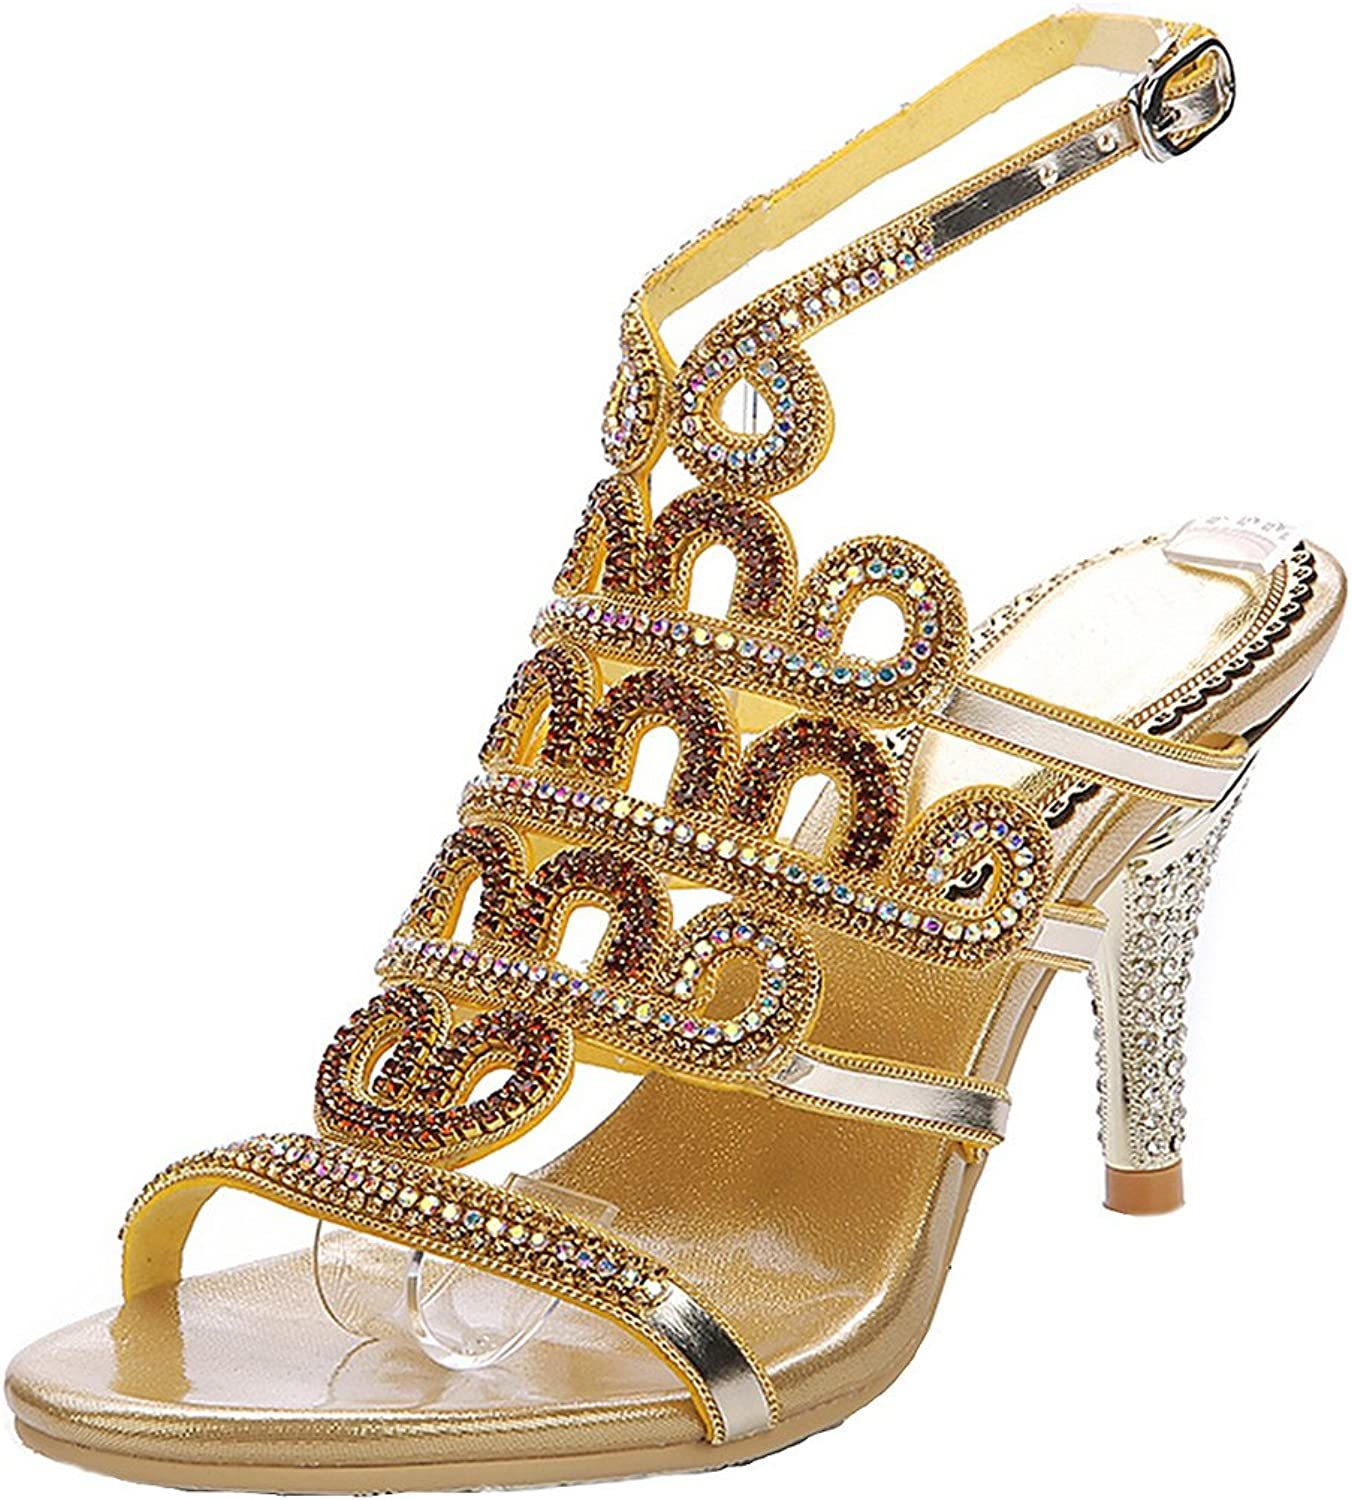 LizForm Open Toe Jewel Cutout Evening Sandals Strappy Rhinestones Wedding Pumps Heels